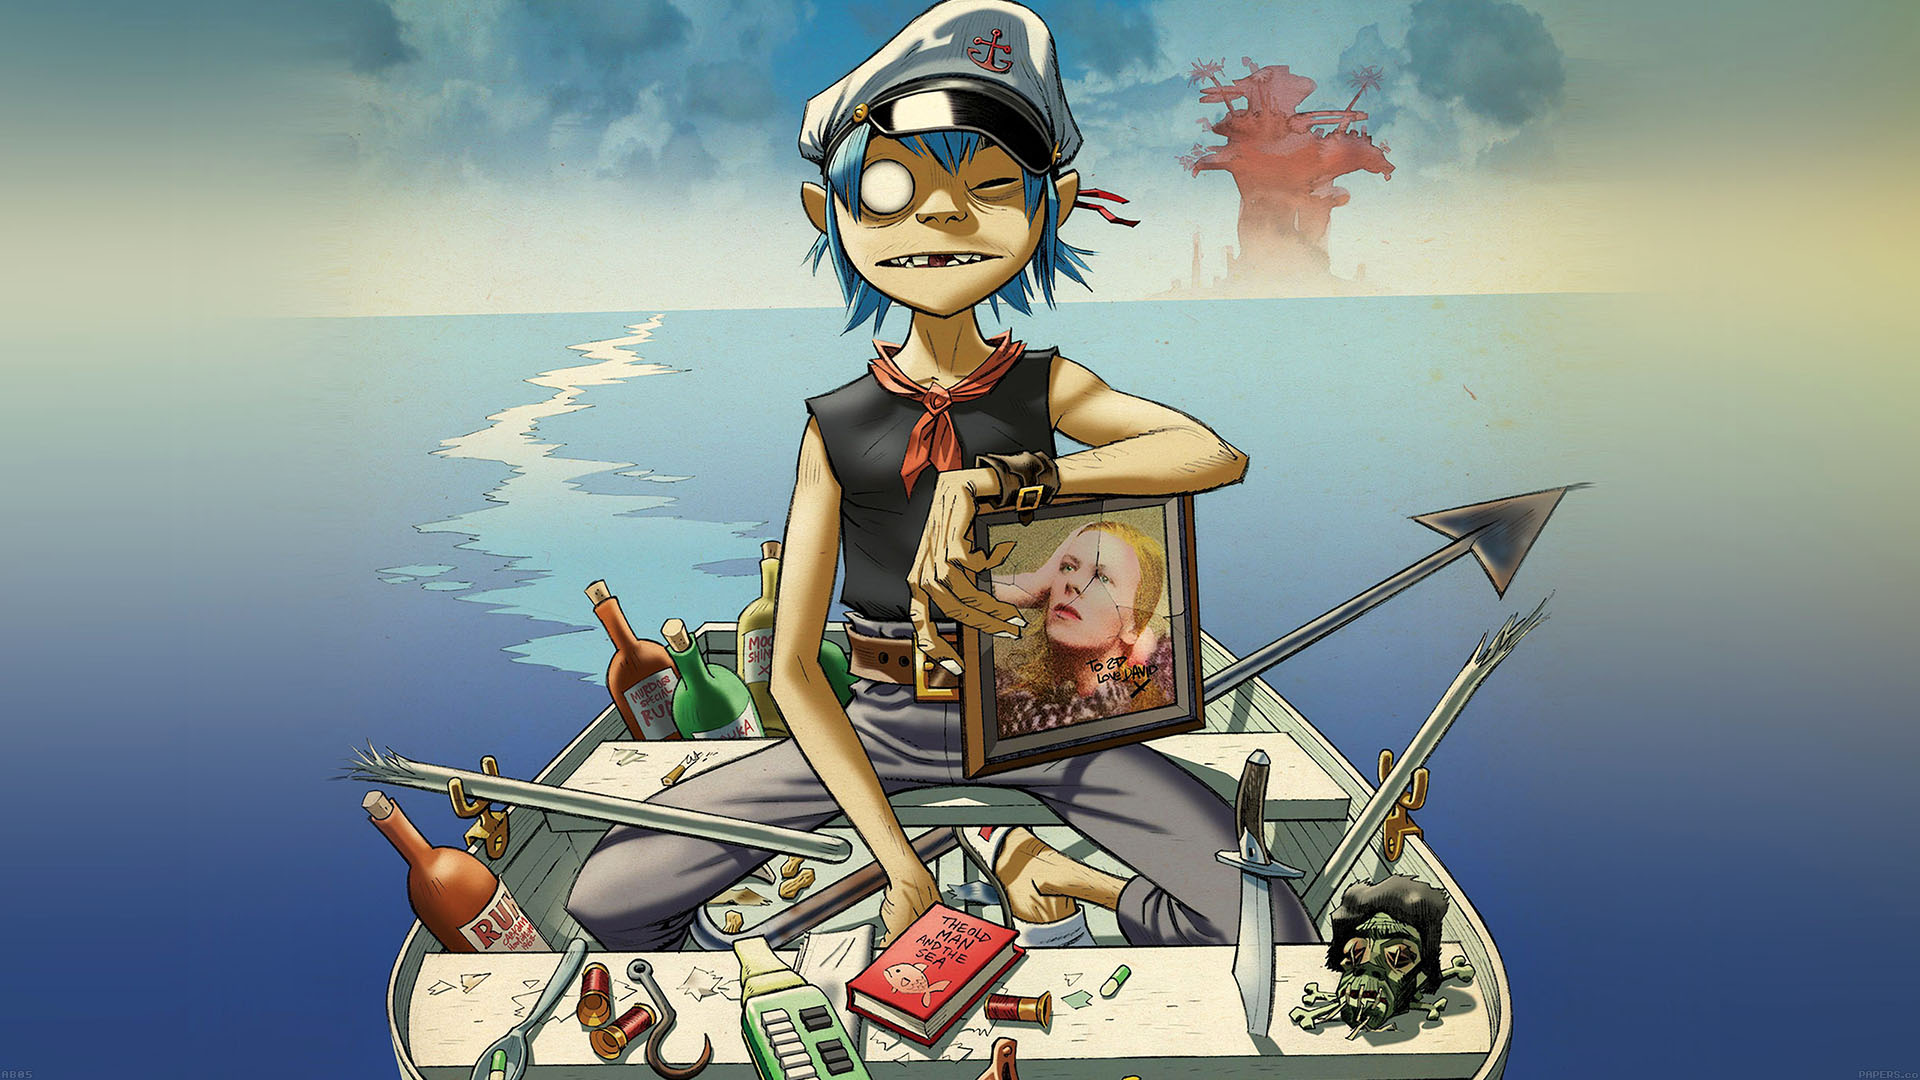 Fall Desktop Mountain Wallpaper Ab05 Wallpaper Gorillaz Boat Illust Music Papers Co